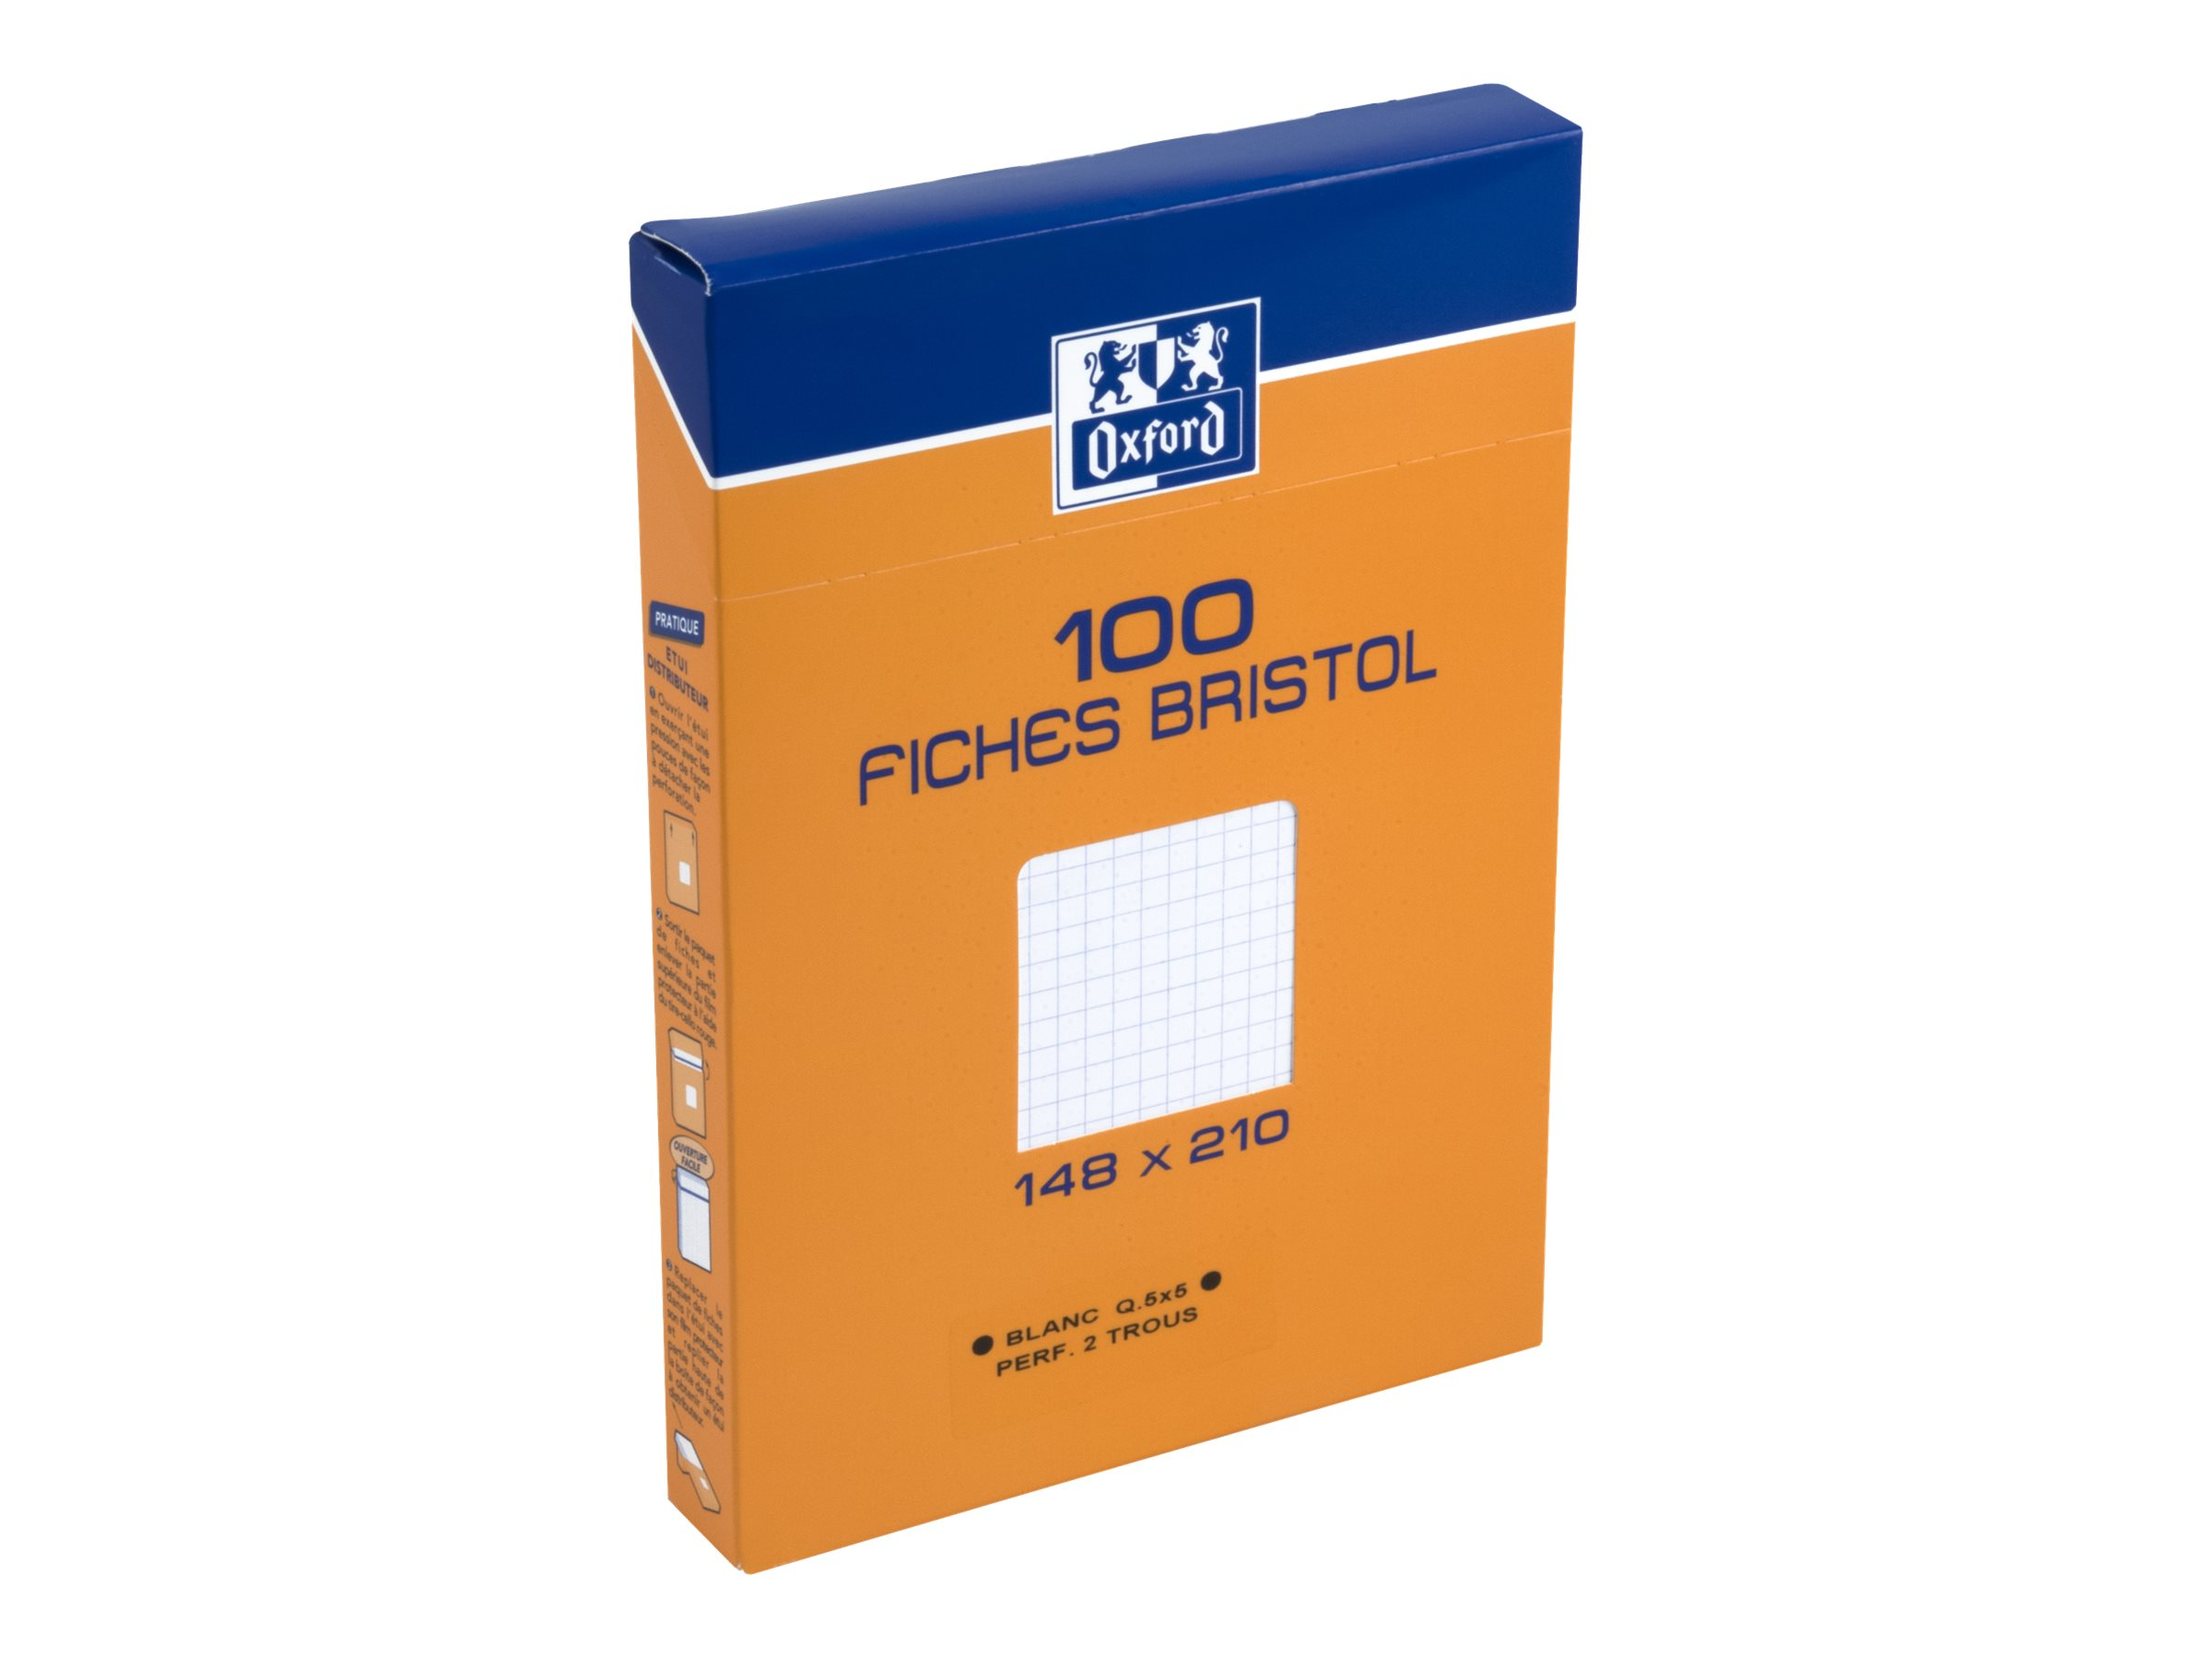 Destructeur De Documents Leclerc Oxford Bristol 100 Fiches D Index A5 Perforées Blanc Petits Carreaux